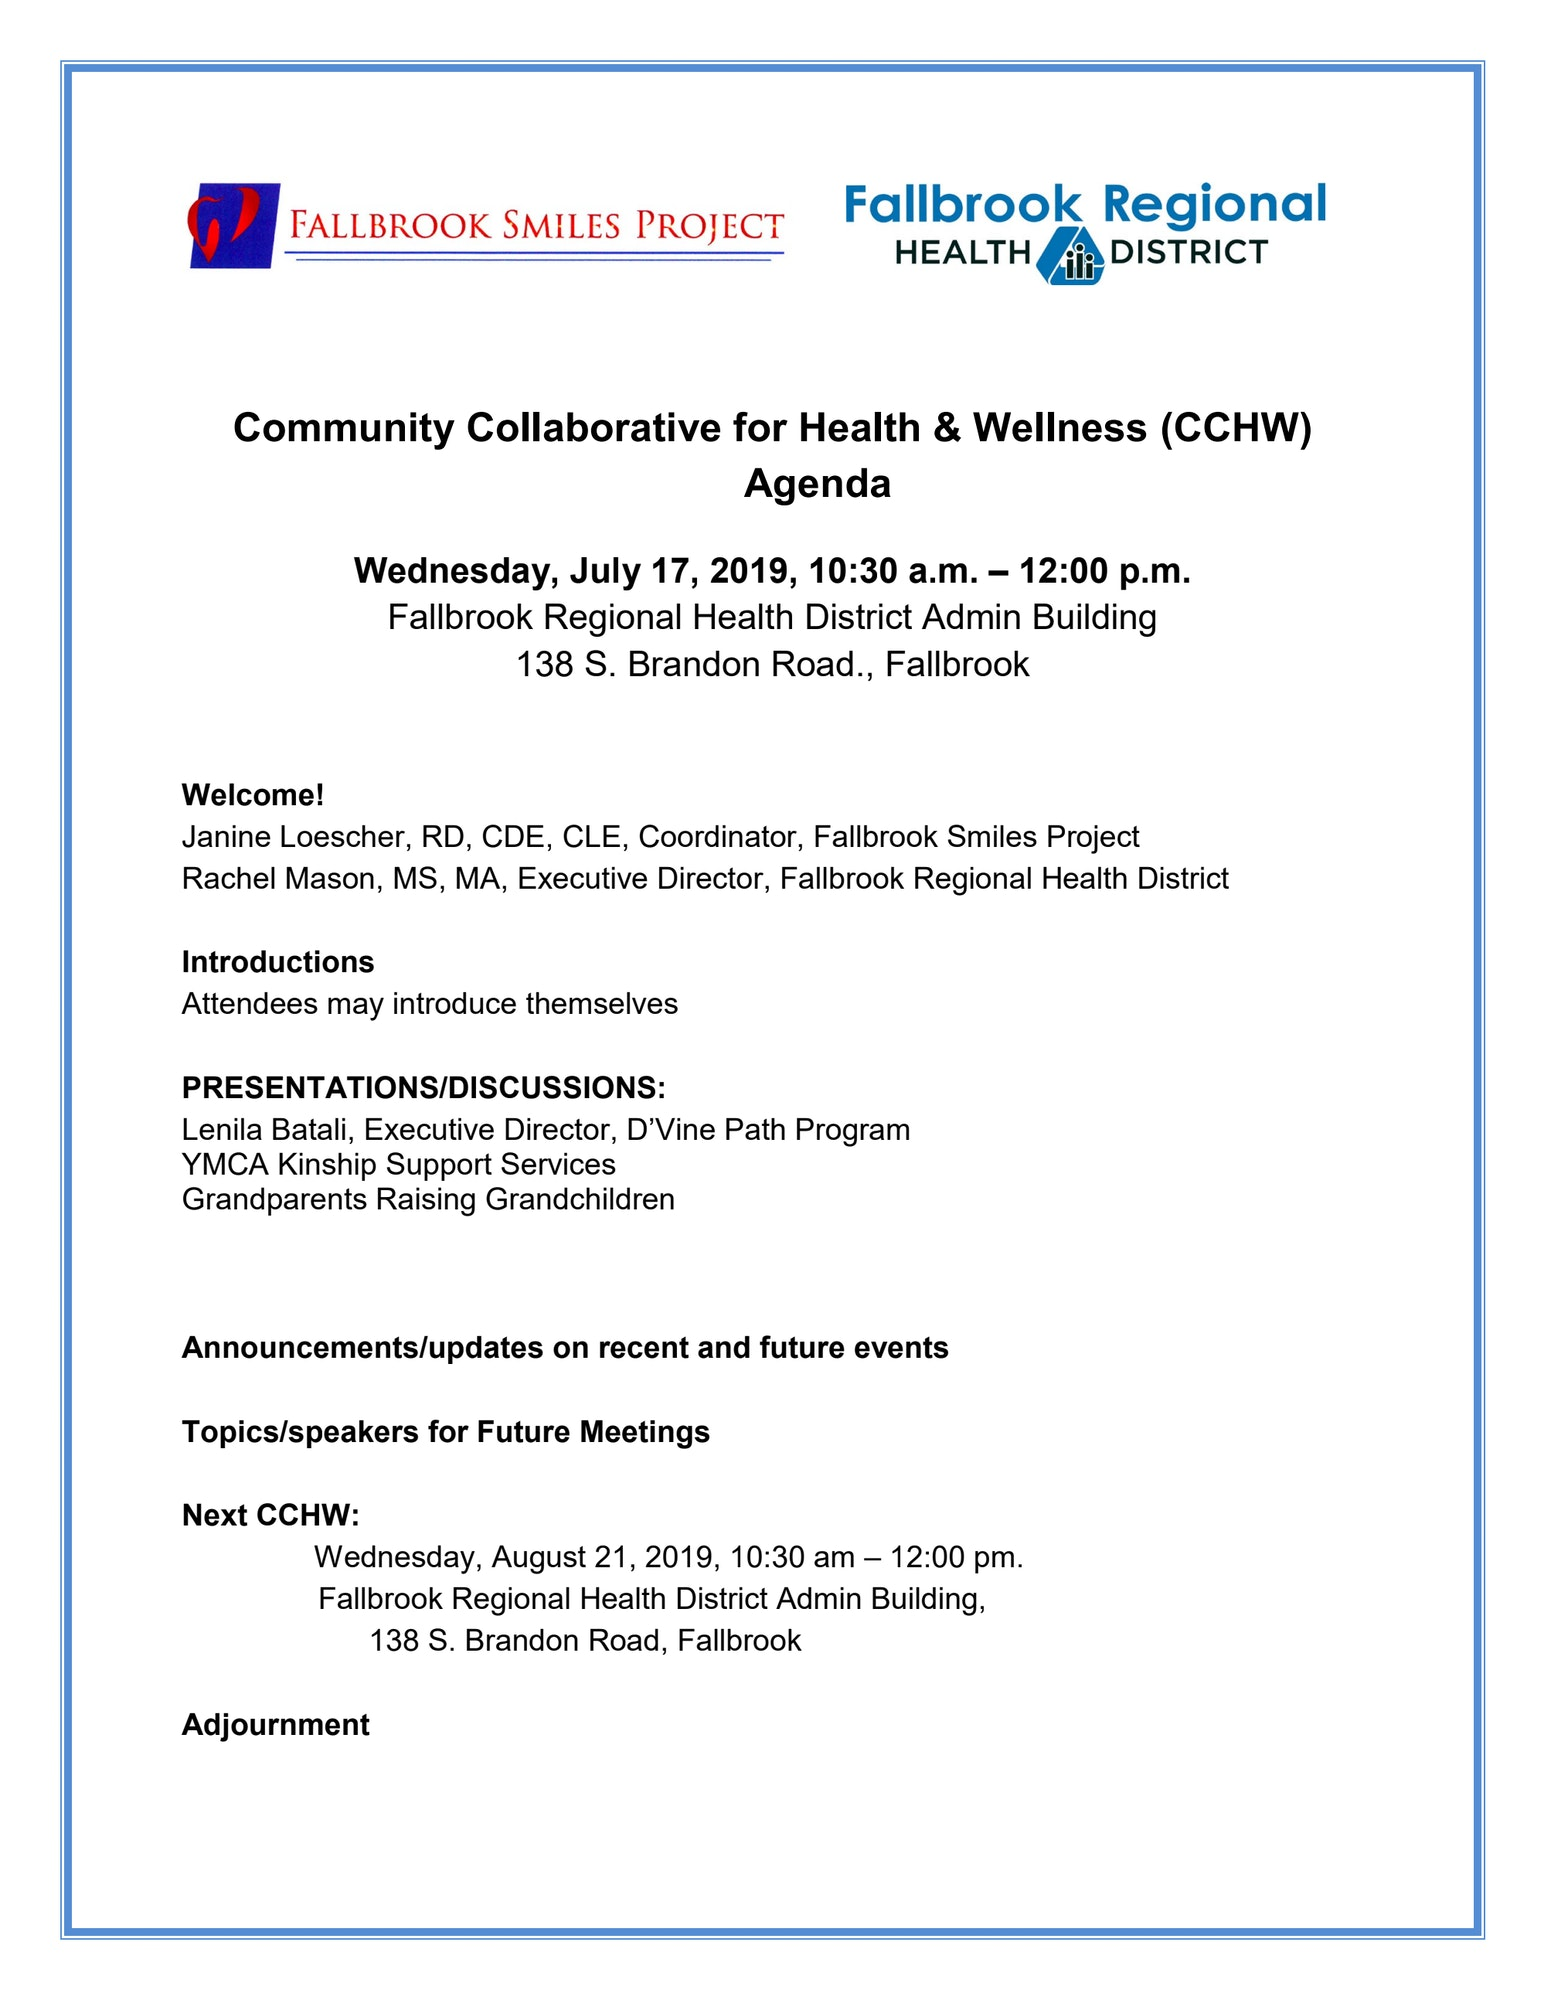 CCHW Agenda for Wednesday July 17th, 10:30am-12pm at 138 S. Brandon Rd., Fallbrook.